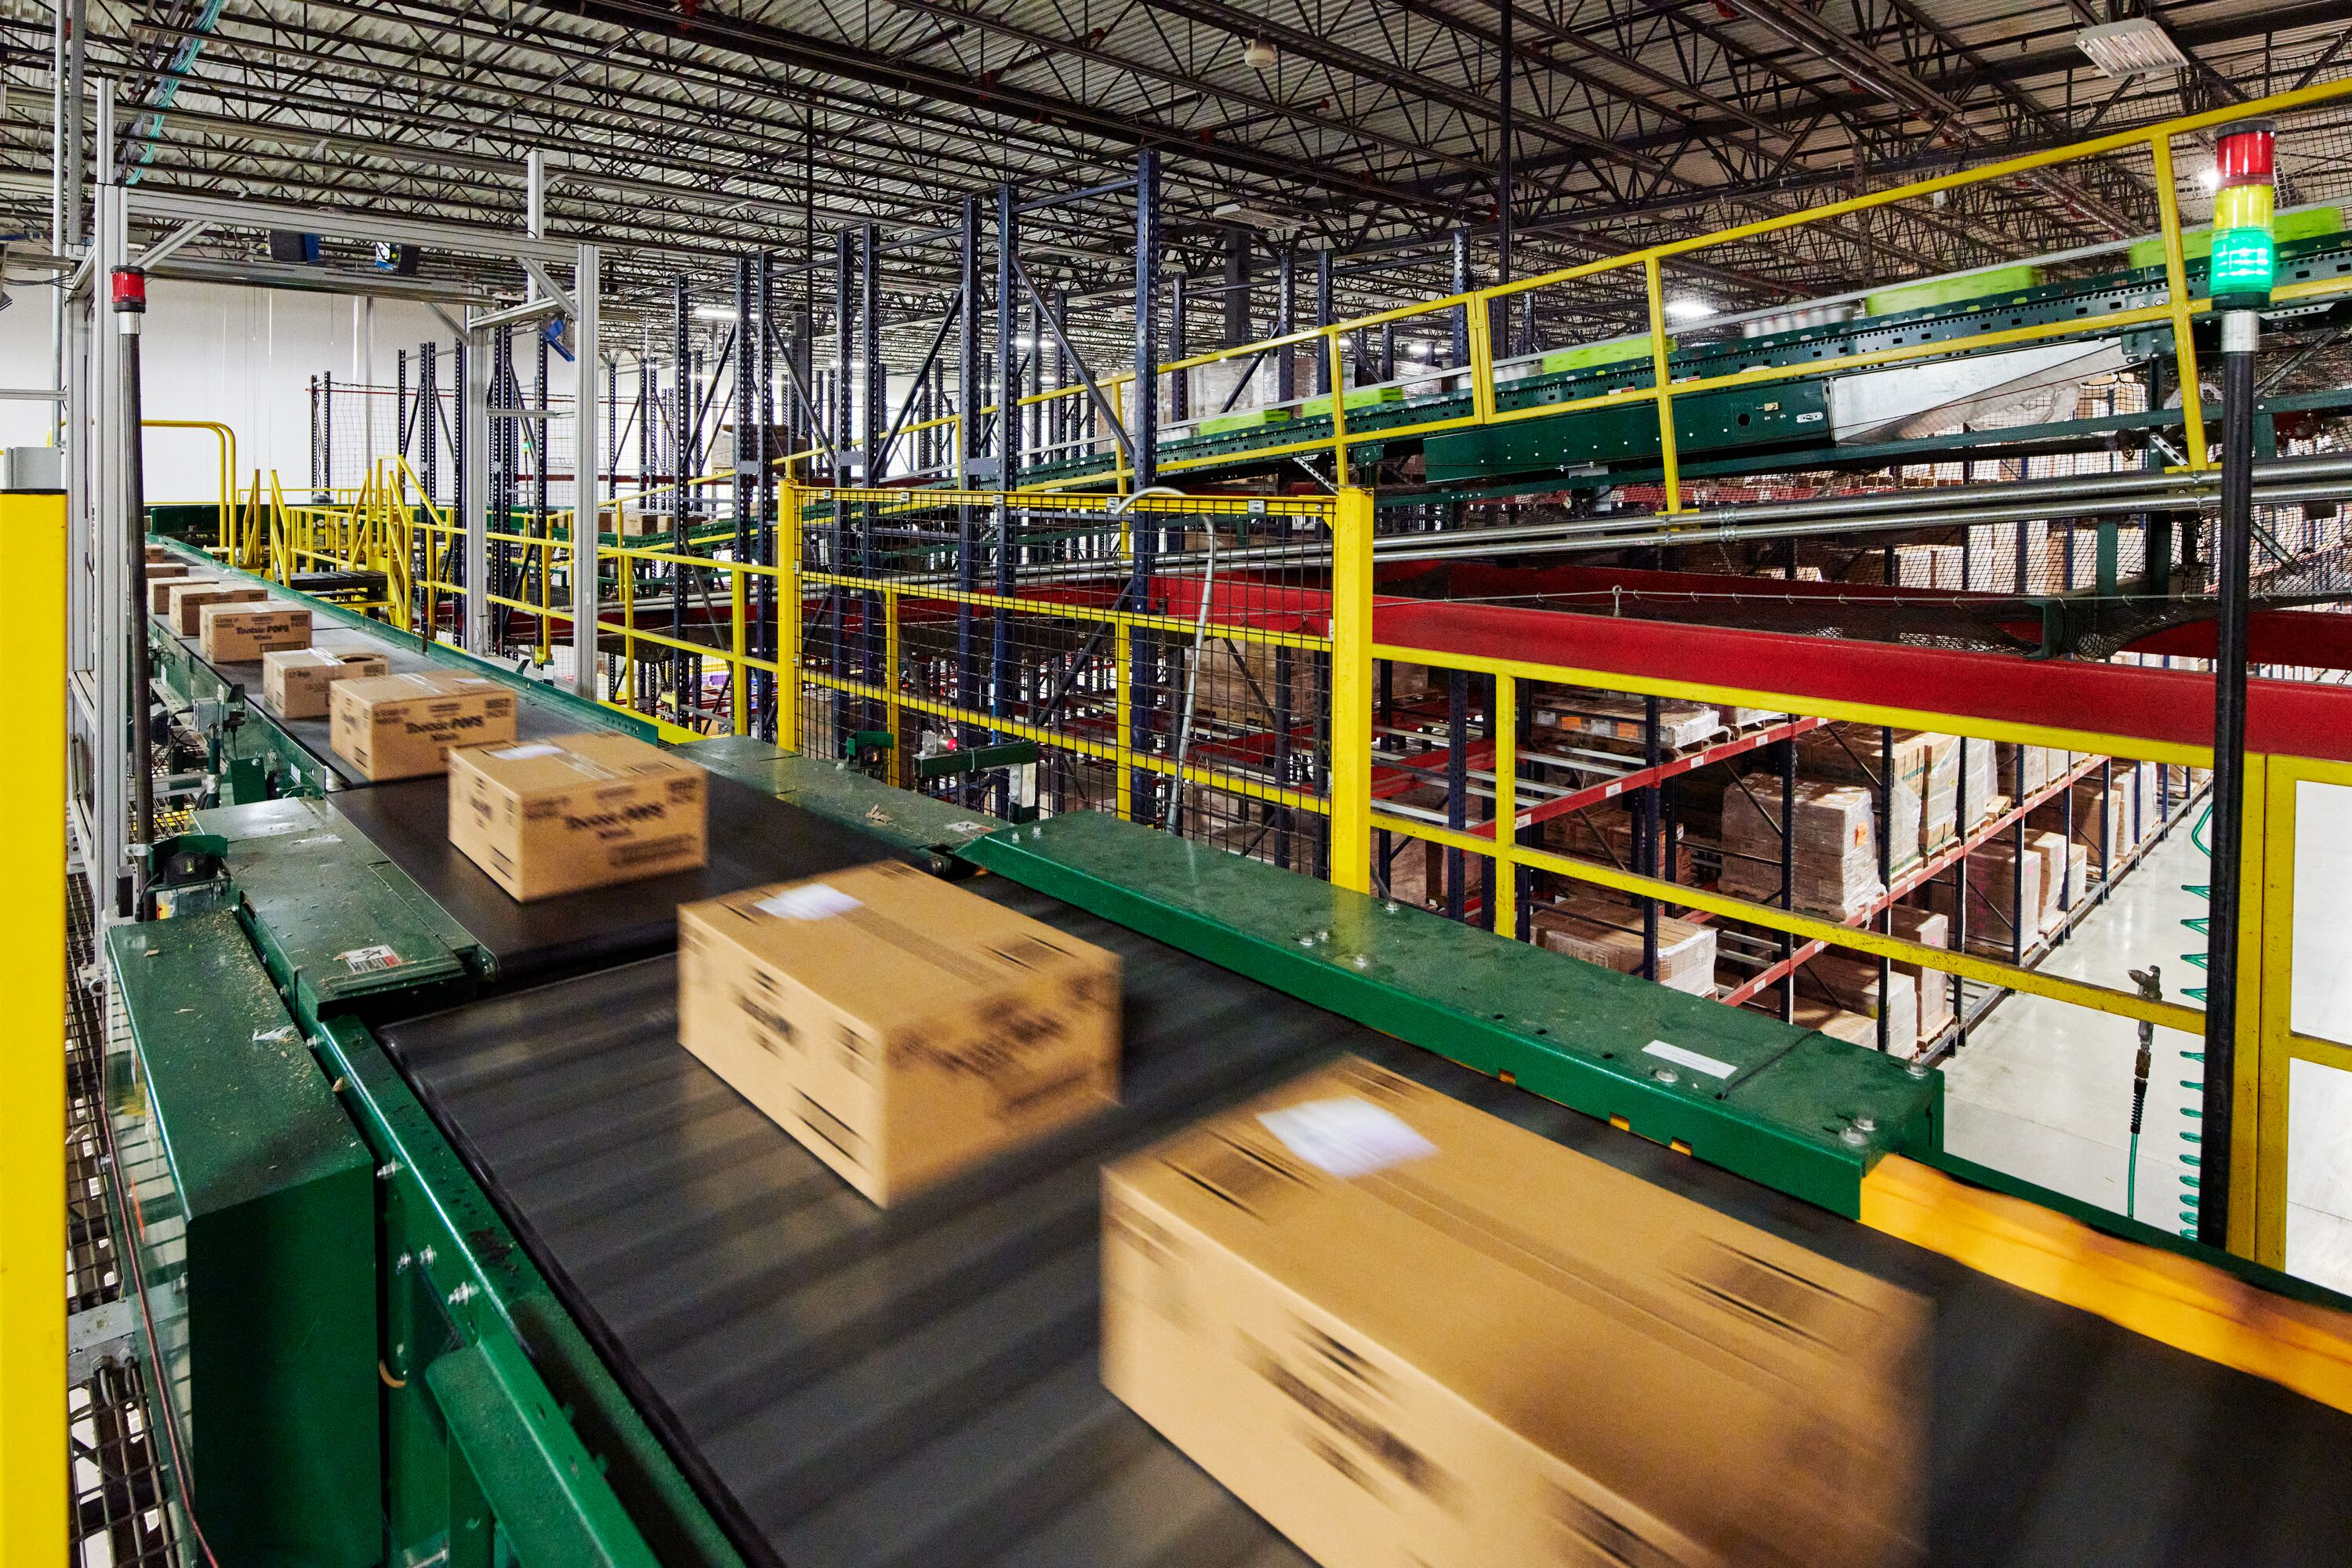 Partial fixed automation: Conveyors, palletizers, pallet shuttles, vertical lifts